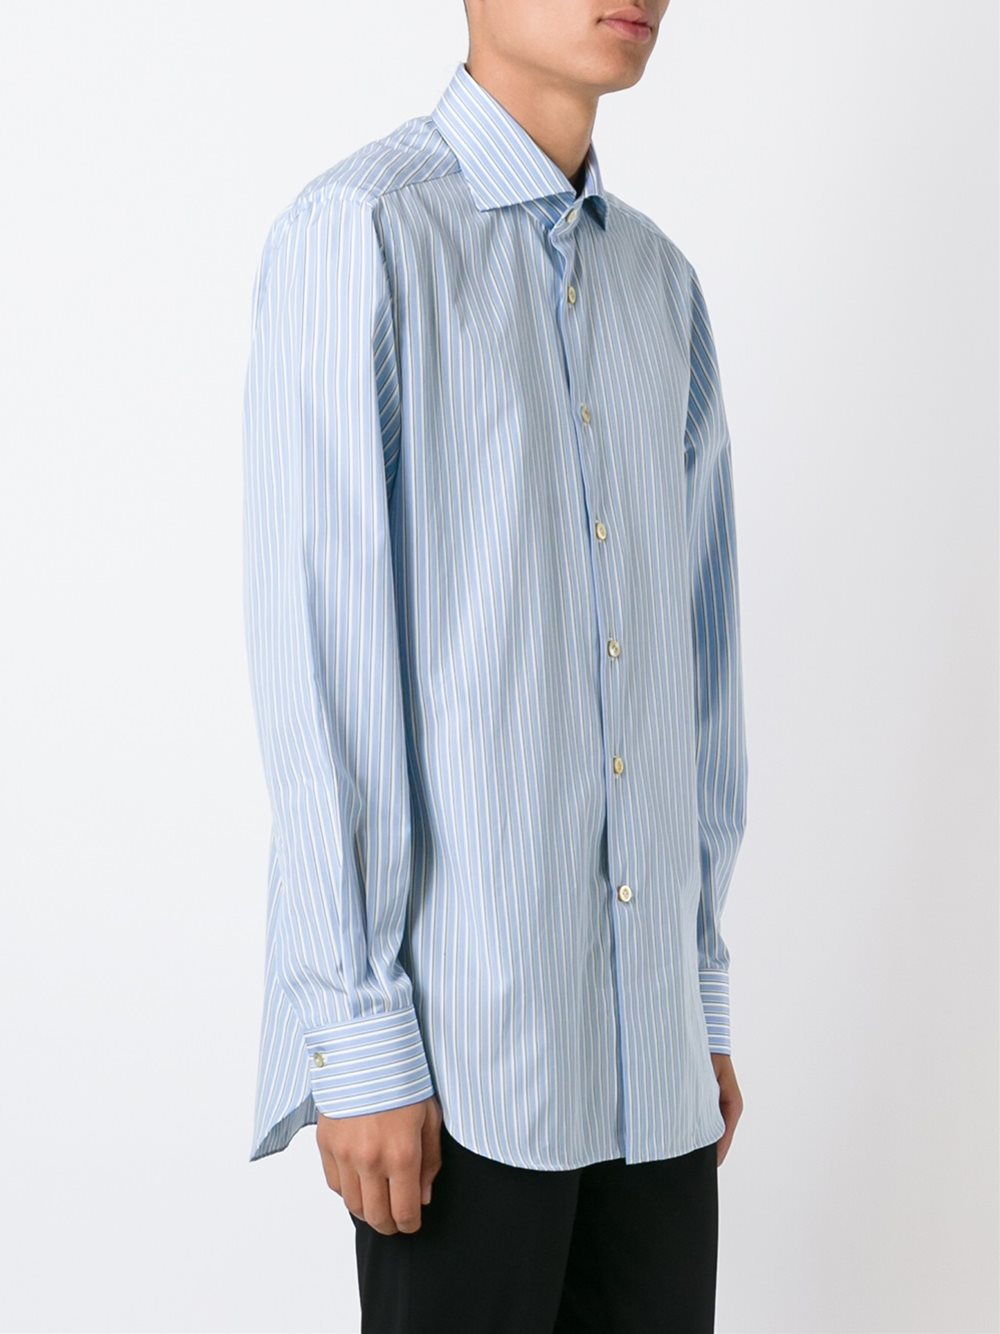 Lyst kiton striped shirt in blue for men for Blue striped shirt mens